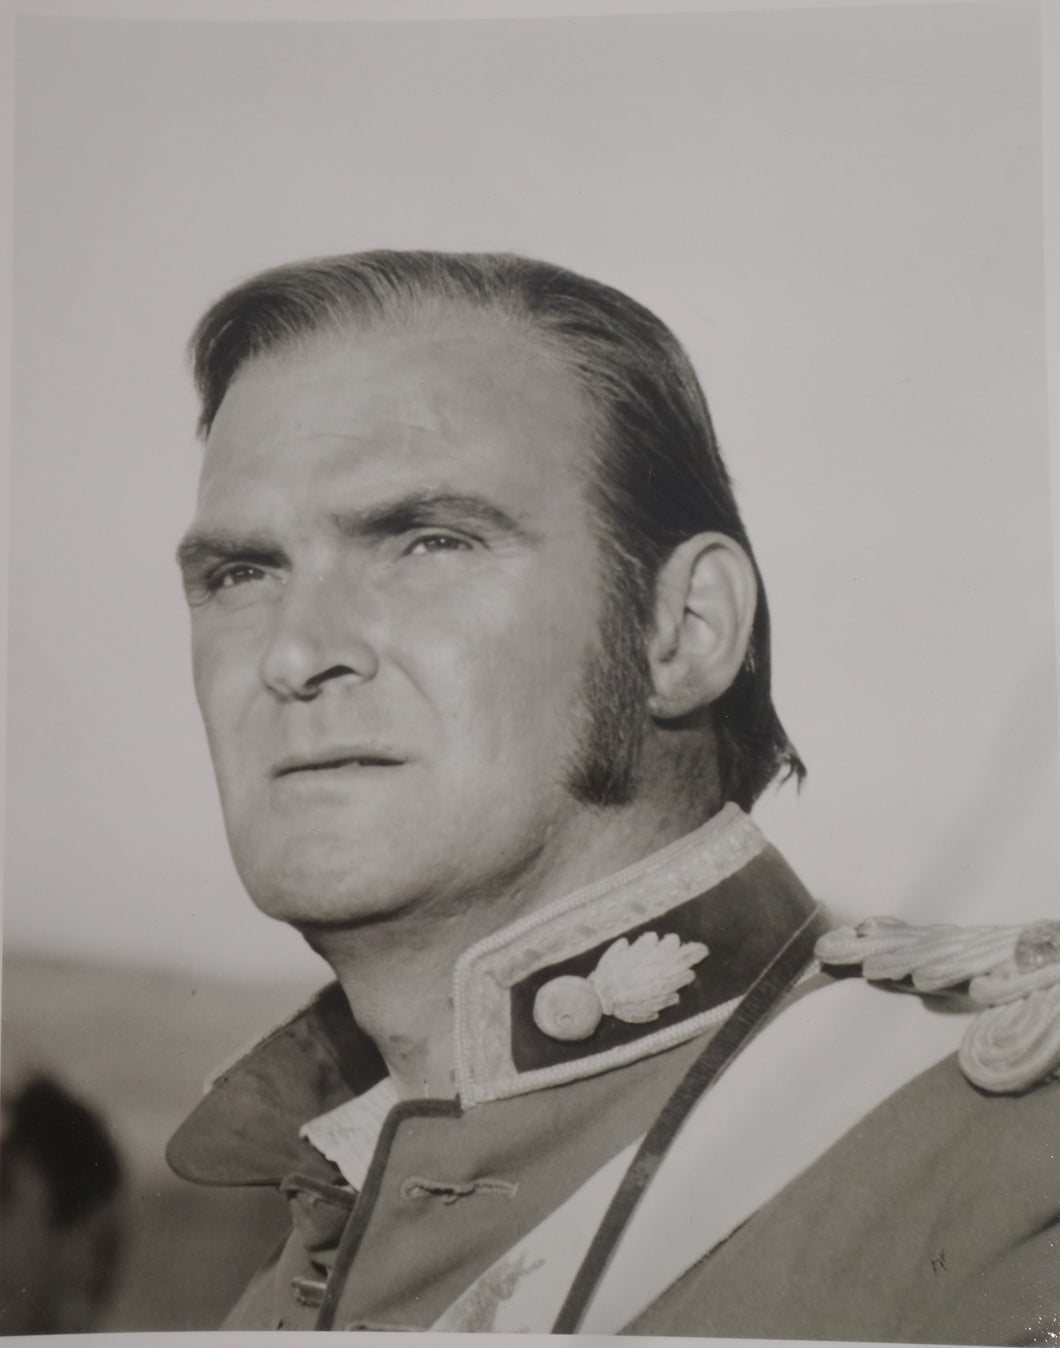 ZULU Movie Still - Featuring Stanley Baker as Lieutenant Chard